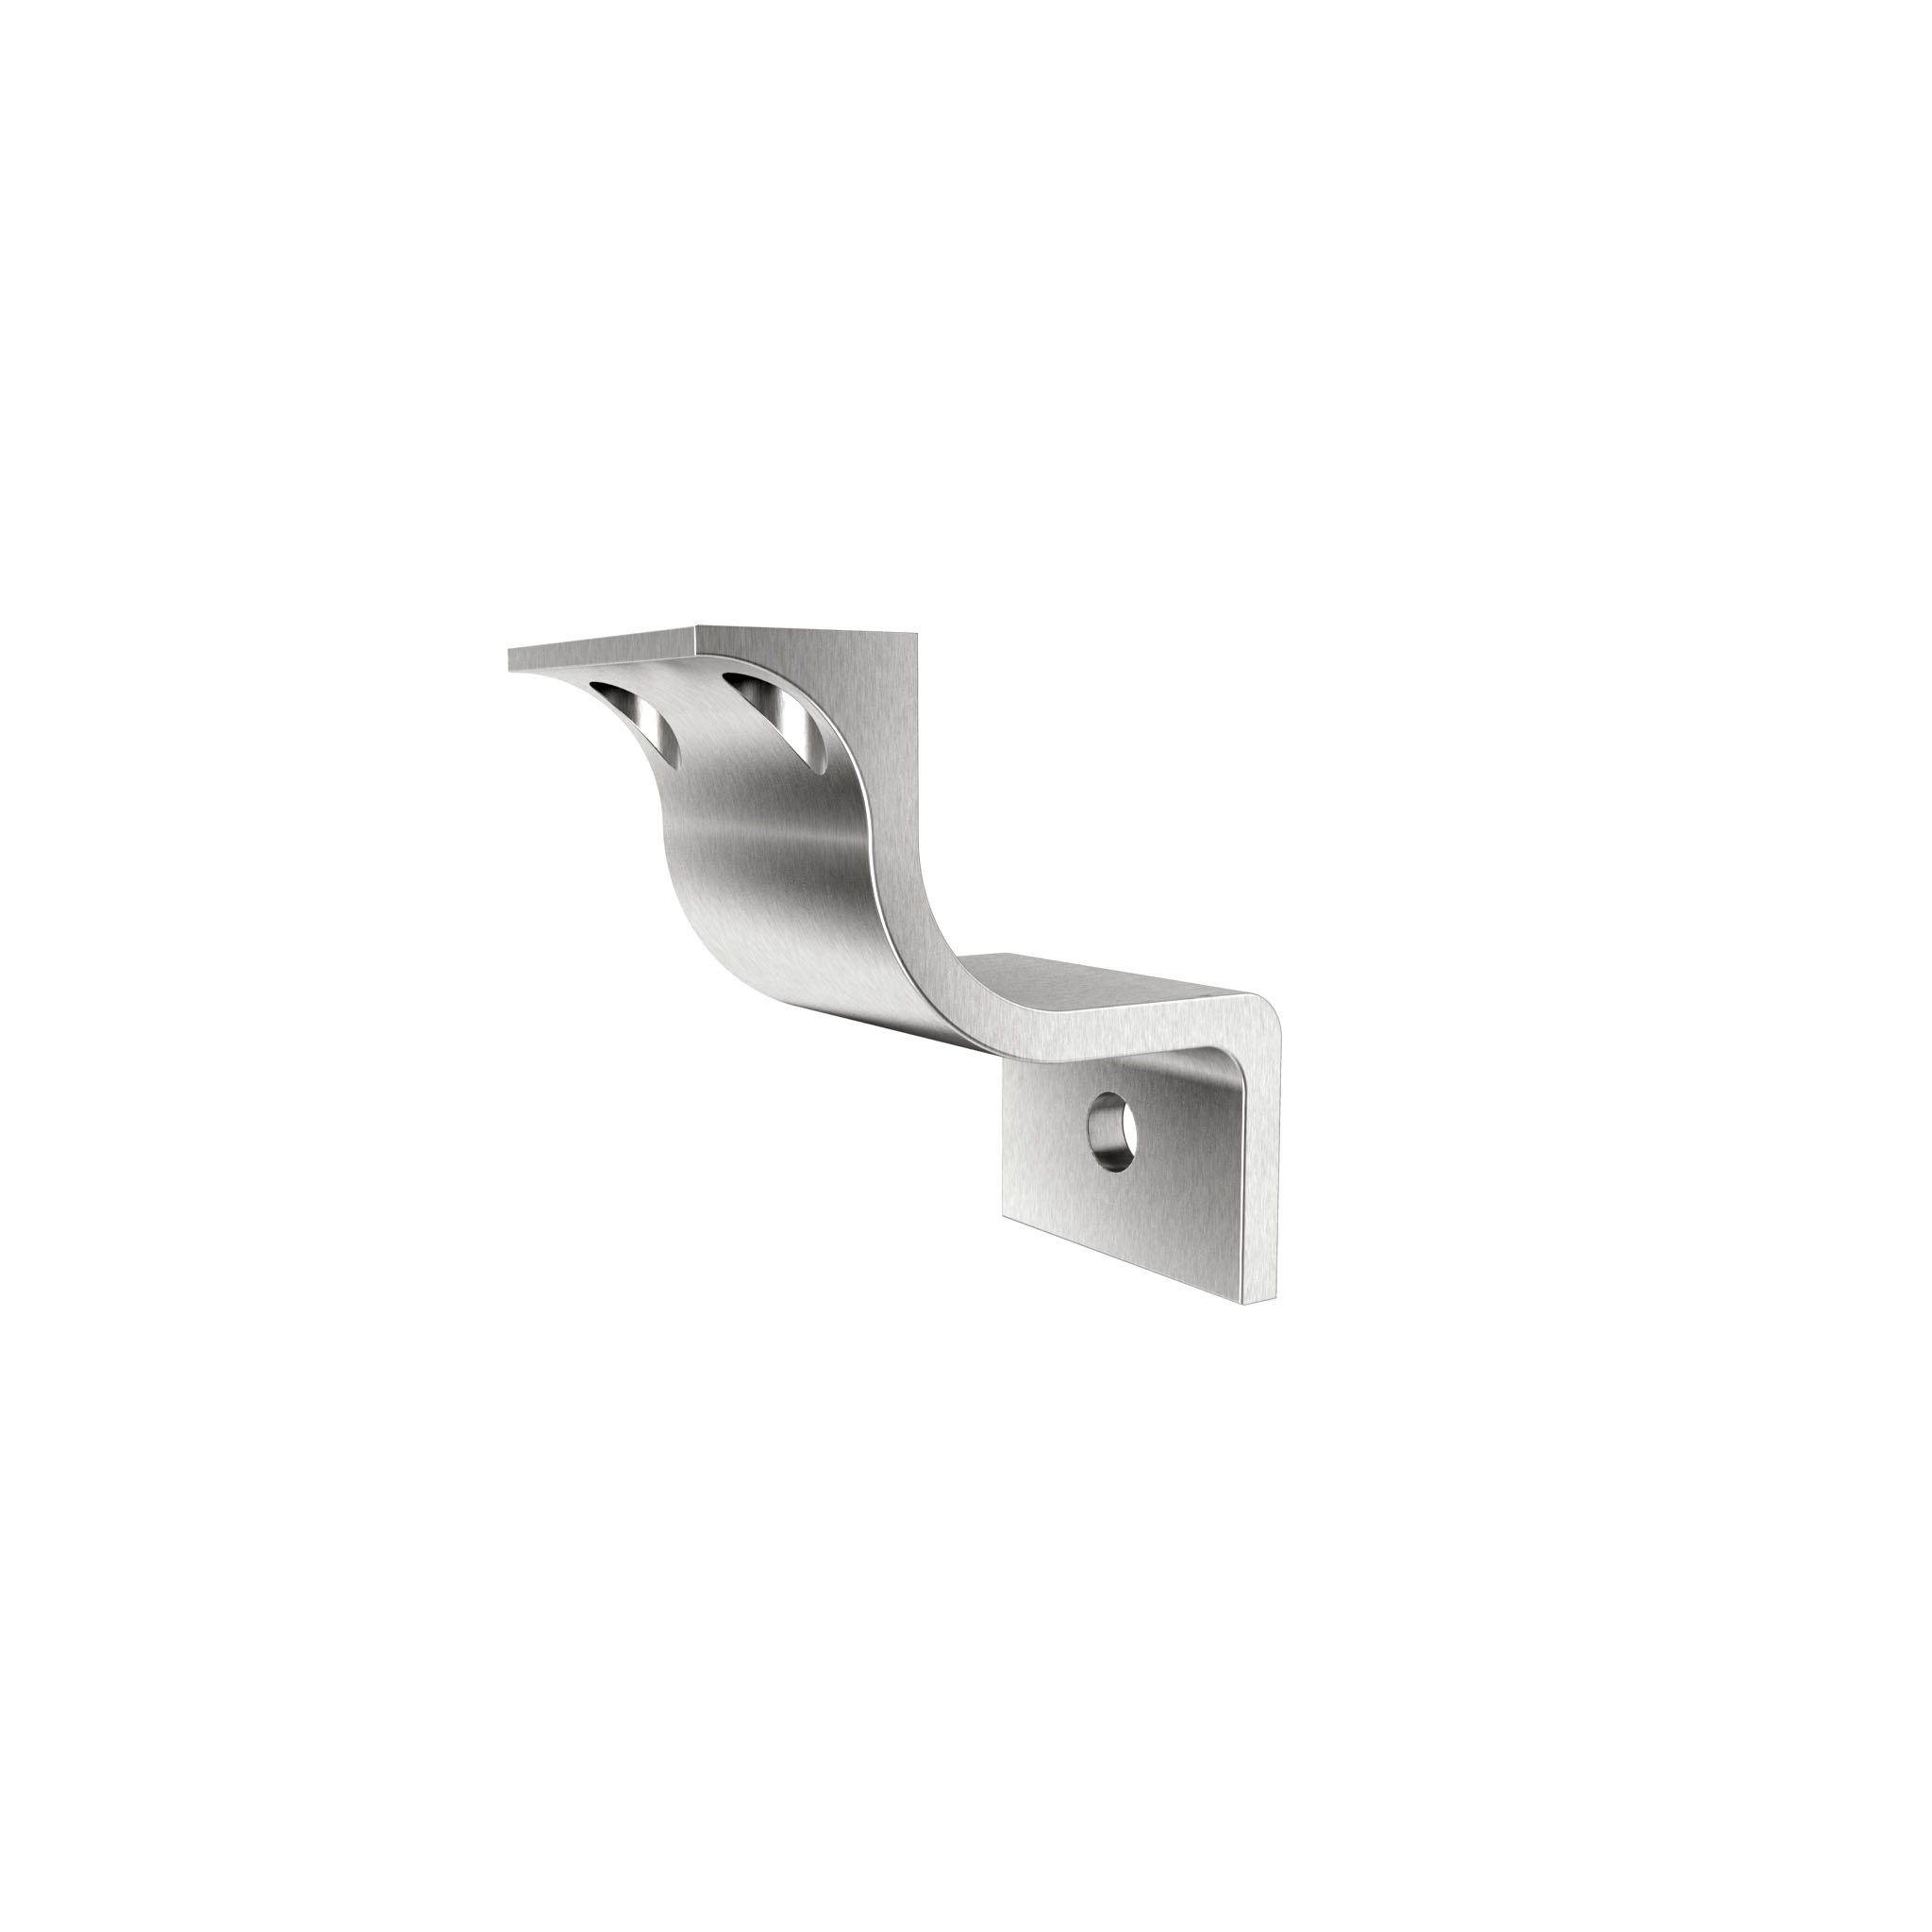 Inline Design Stainless Steel Handrail Wall Bracket Pulsar